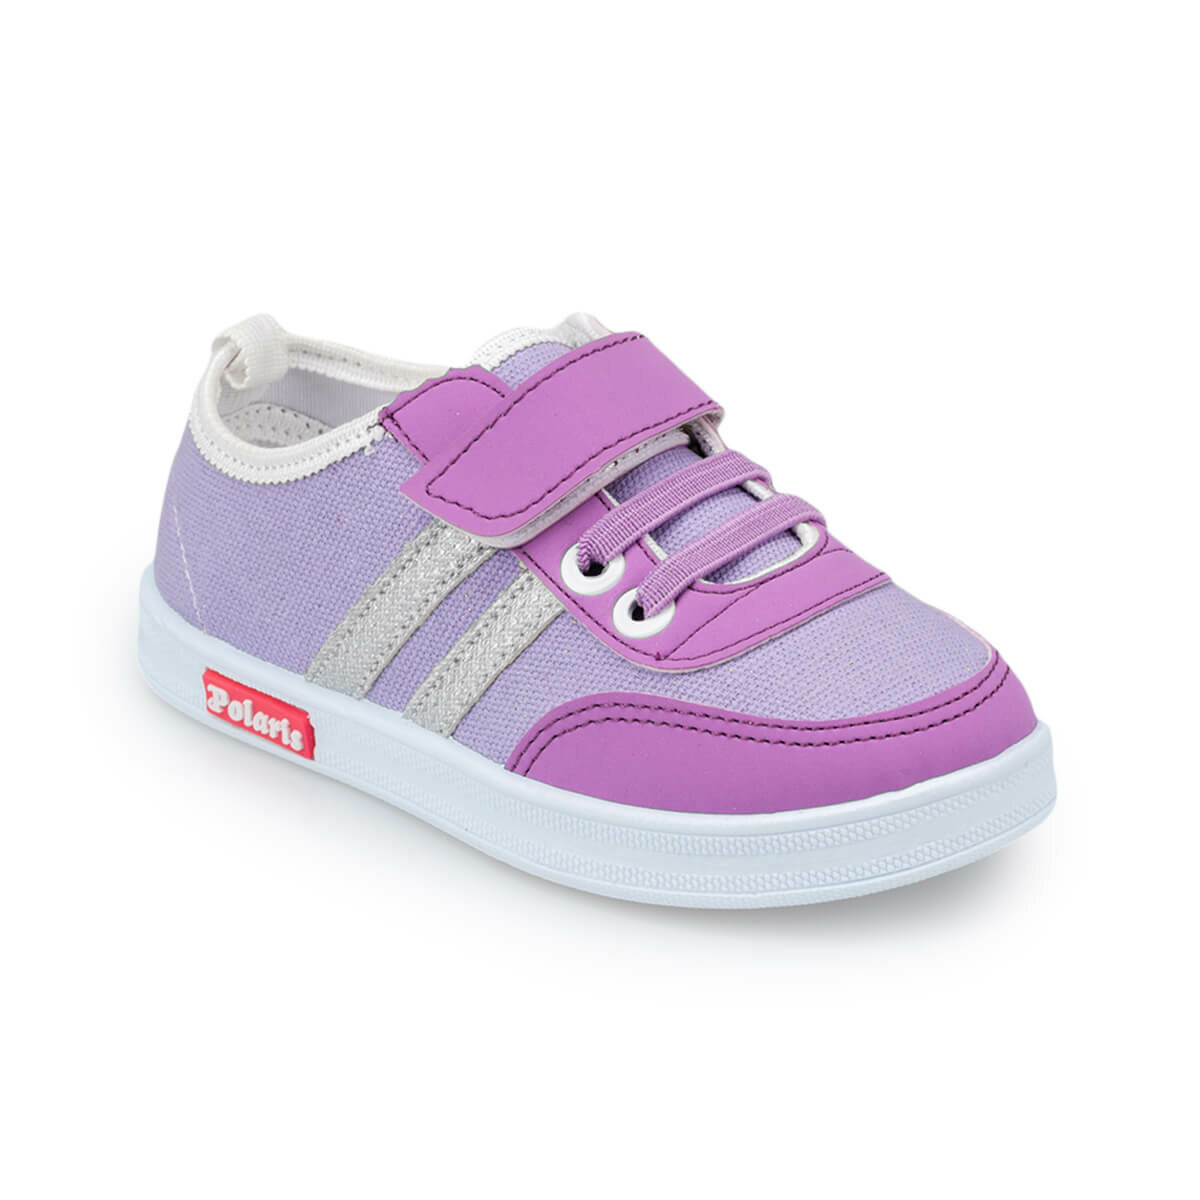 FLO 91. 511130.P Lilac Female Child Shoes Polaris